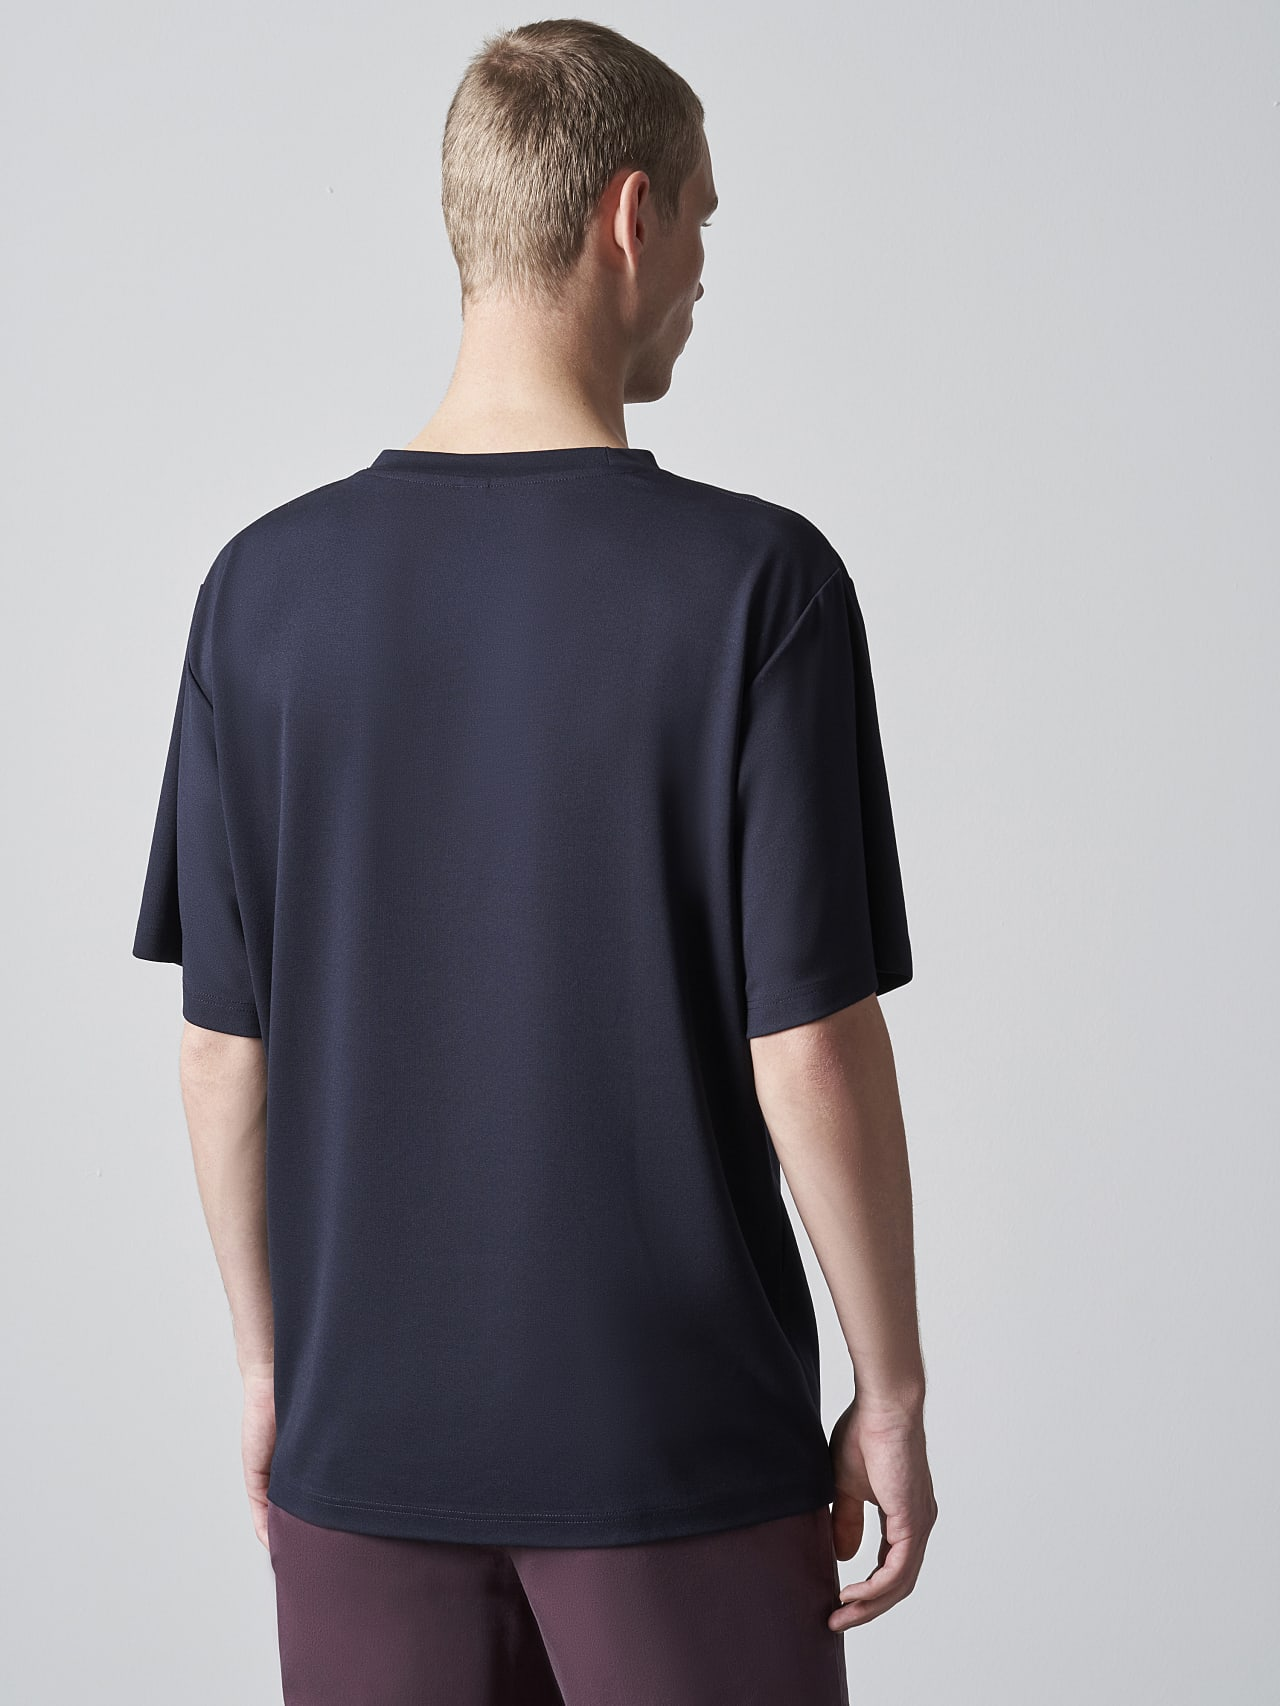 JAHEV V1.Y5.02 Relaxed Logo T-Shirt navy Front Main Alpha Tauri